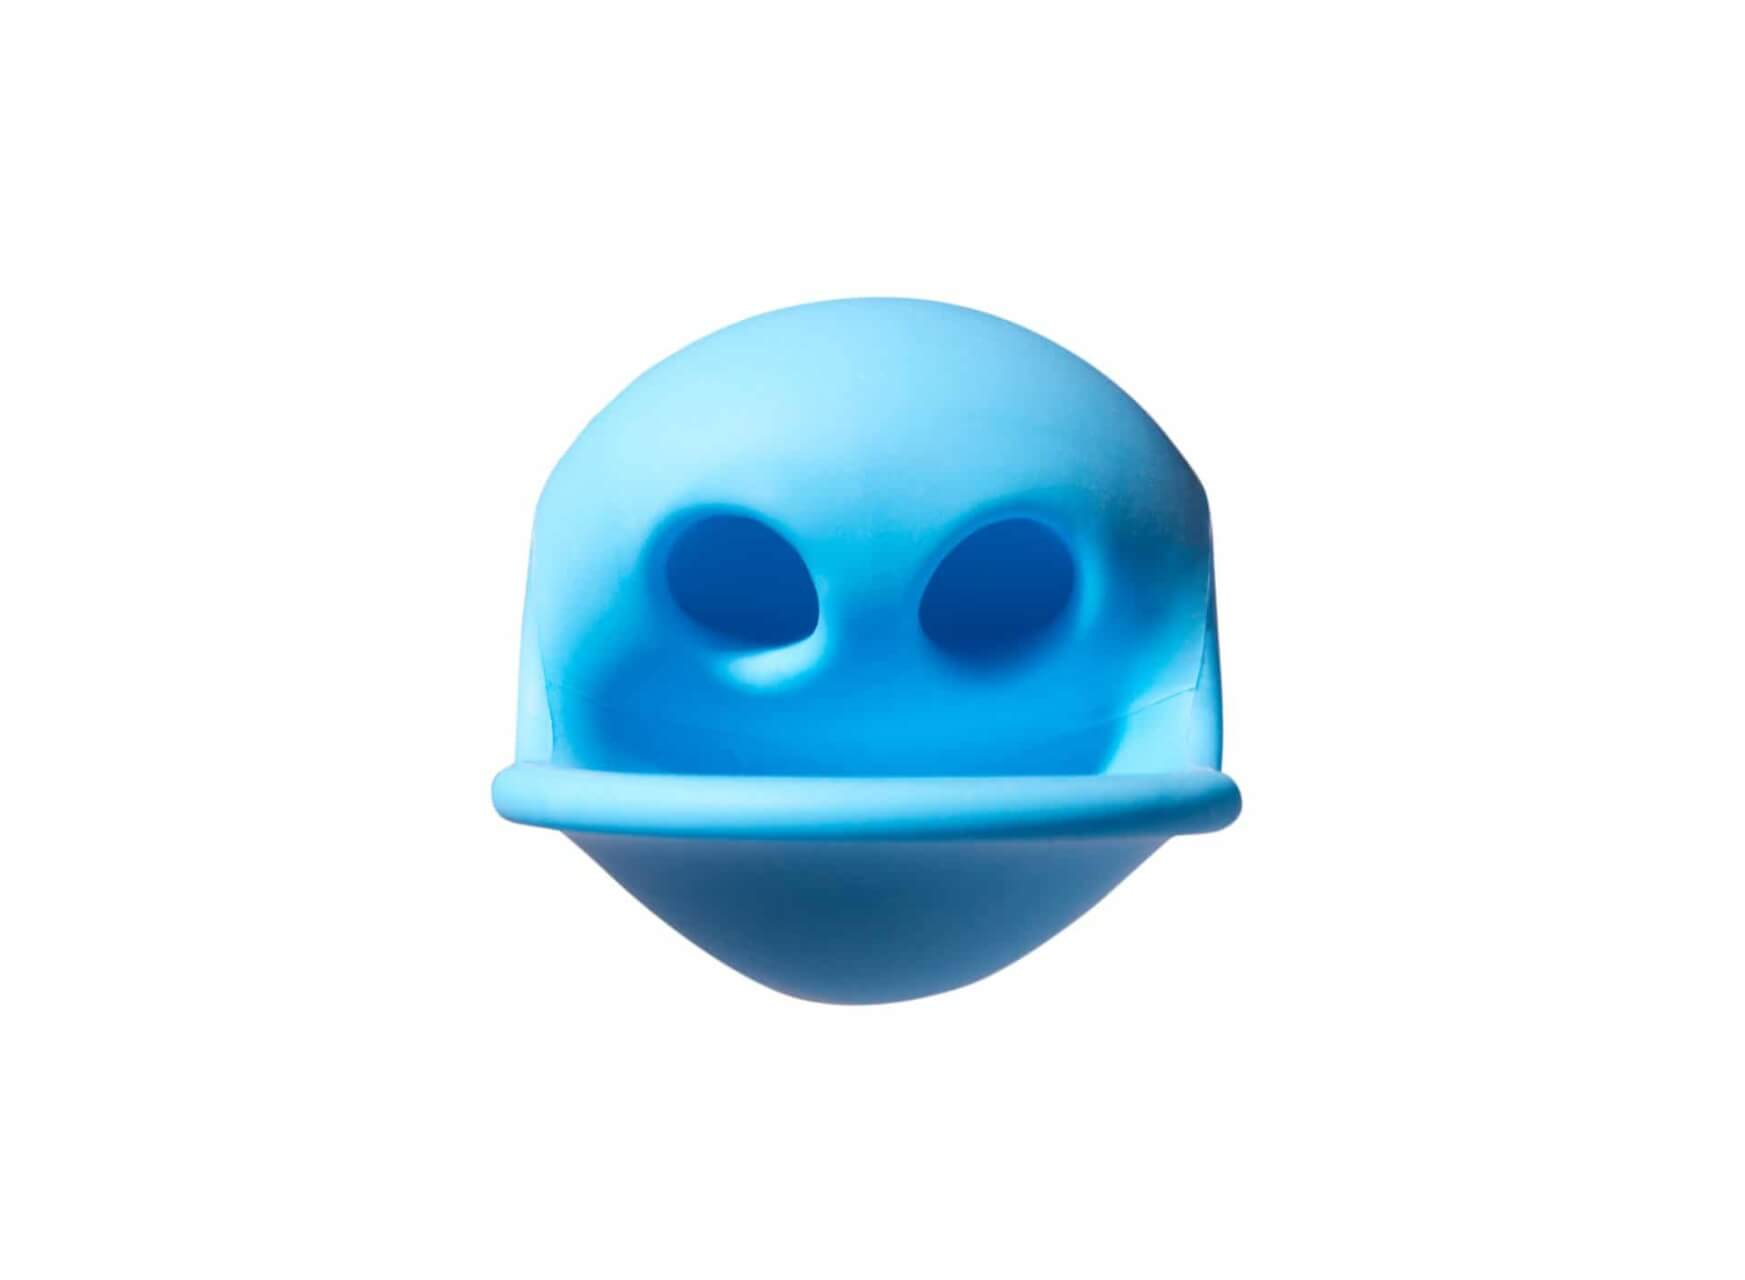 grumpy face made using silicone ball